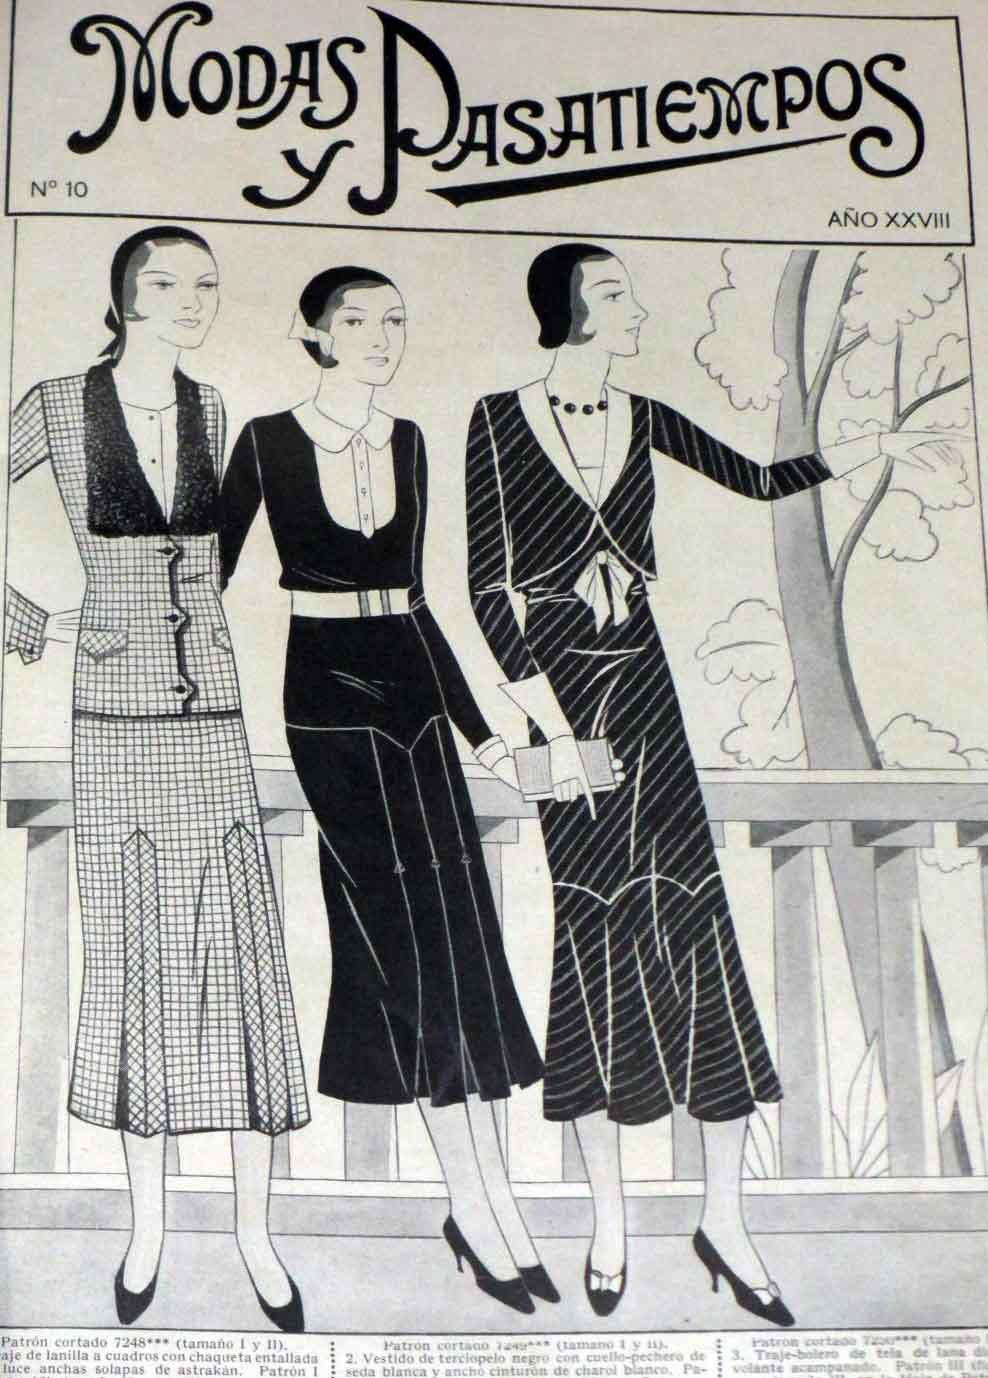 Vintage Fashion Couture Modas Pasatiempos Magazine 1931 Like Vogue has patterns at Amazons Entertainment Collectibles Store